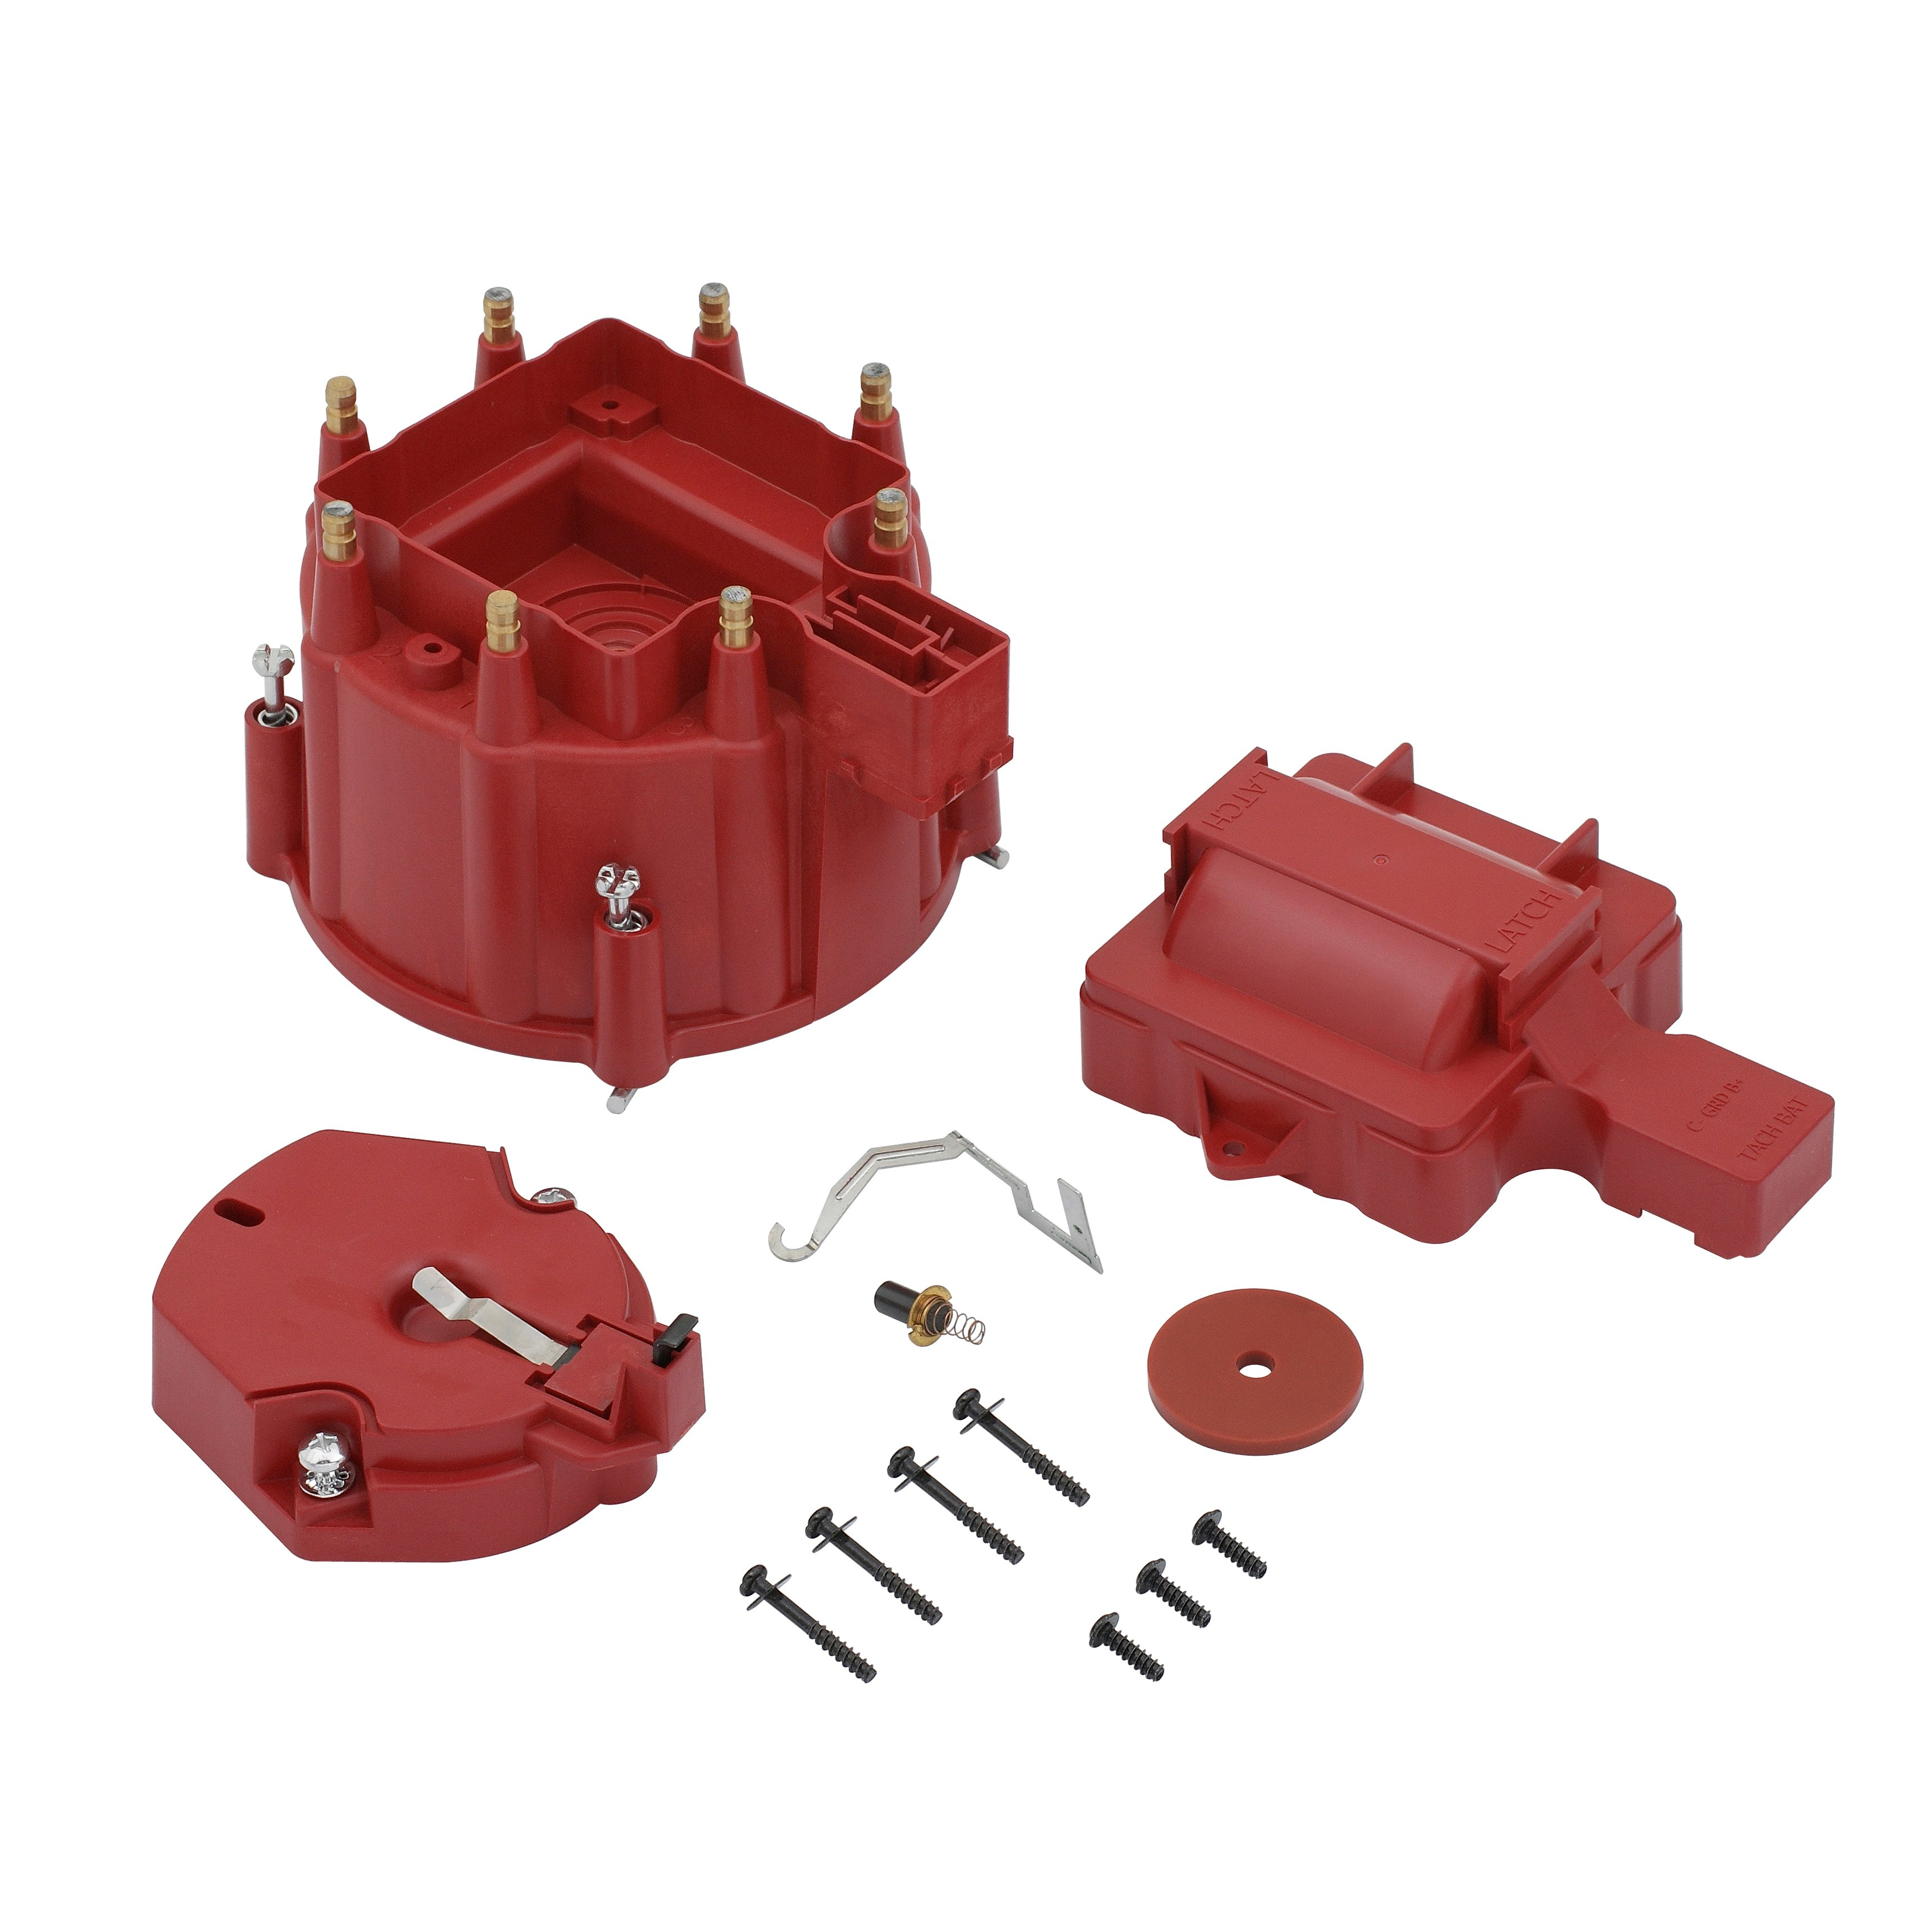 Accel 8141r Hei Corrected Cap Distributor For Gm Red 98 Chevy Truck Image